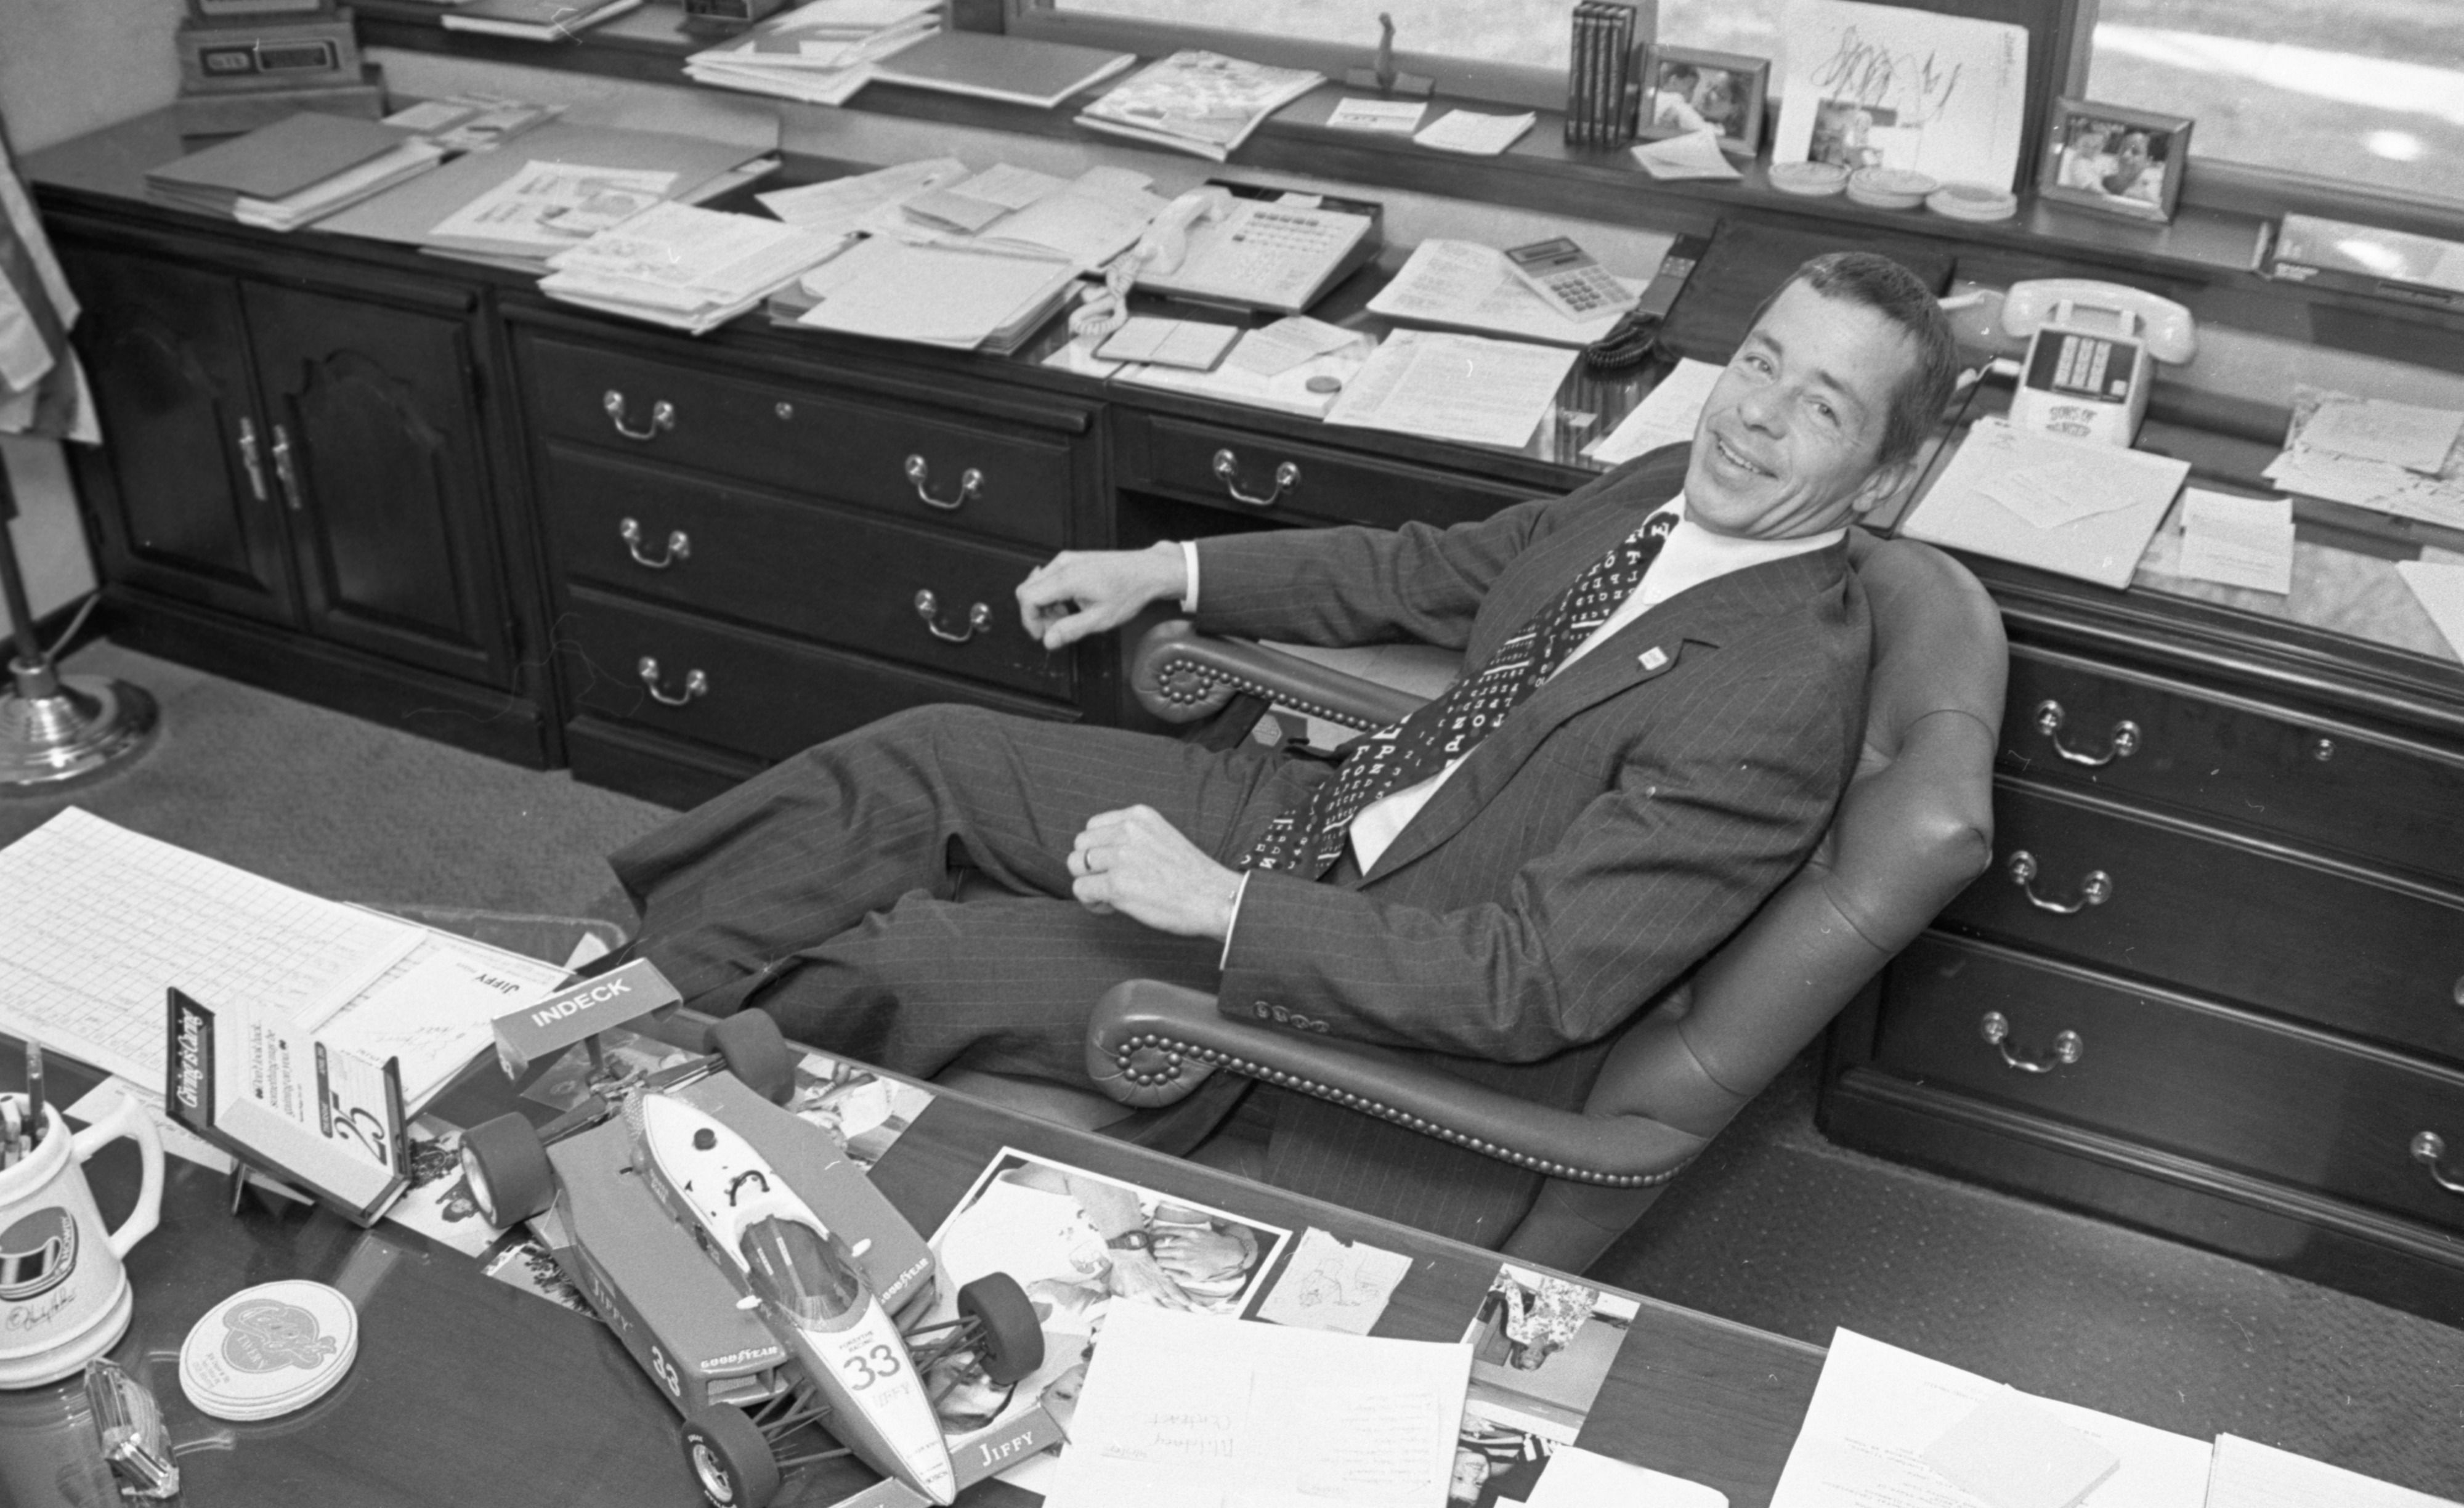 Retired Auto Racer Howdy Holmes In His Jiffy Mix Office, April 1991 image